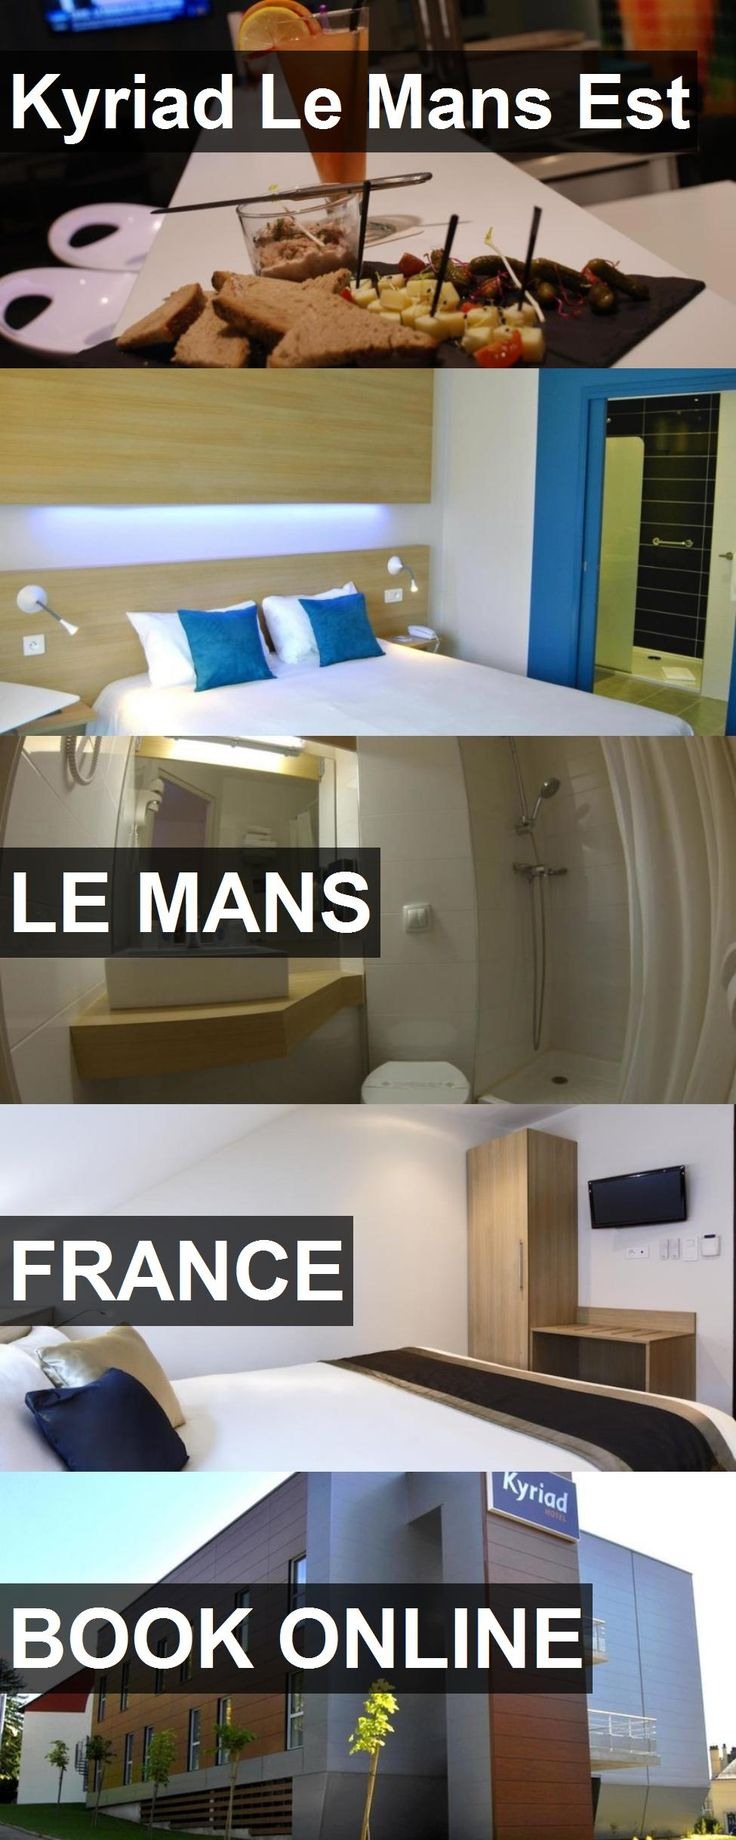 Hotel Kyriad Le Mans Est in Le Mans, France. For more information, photos, reviews and best prices please follow the link. #France #LeMans #travel #vacation #hotel